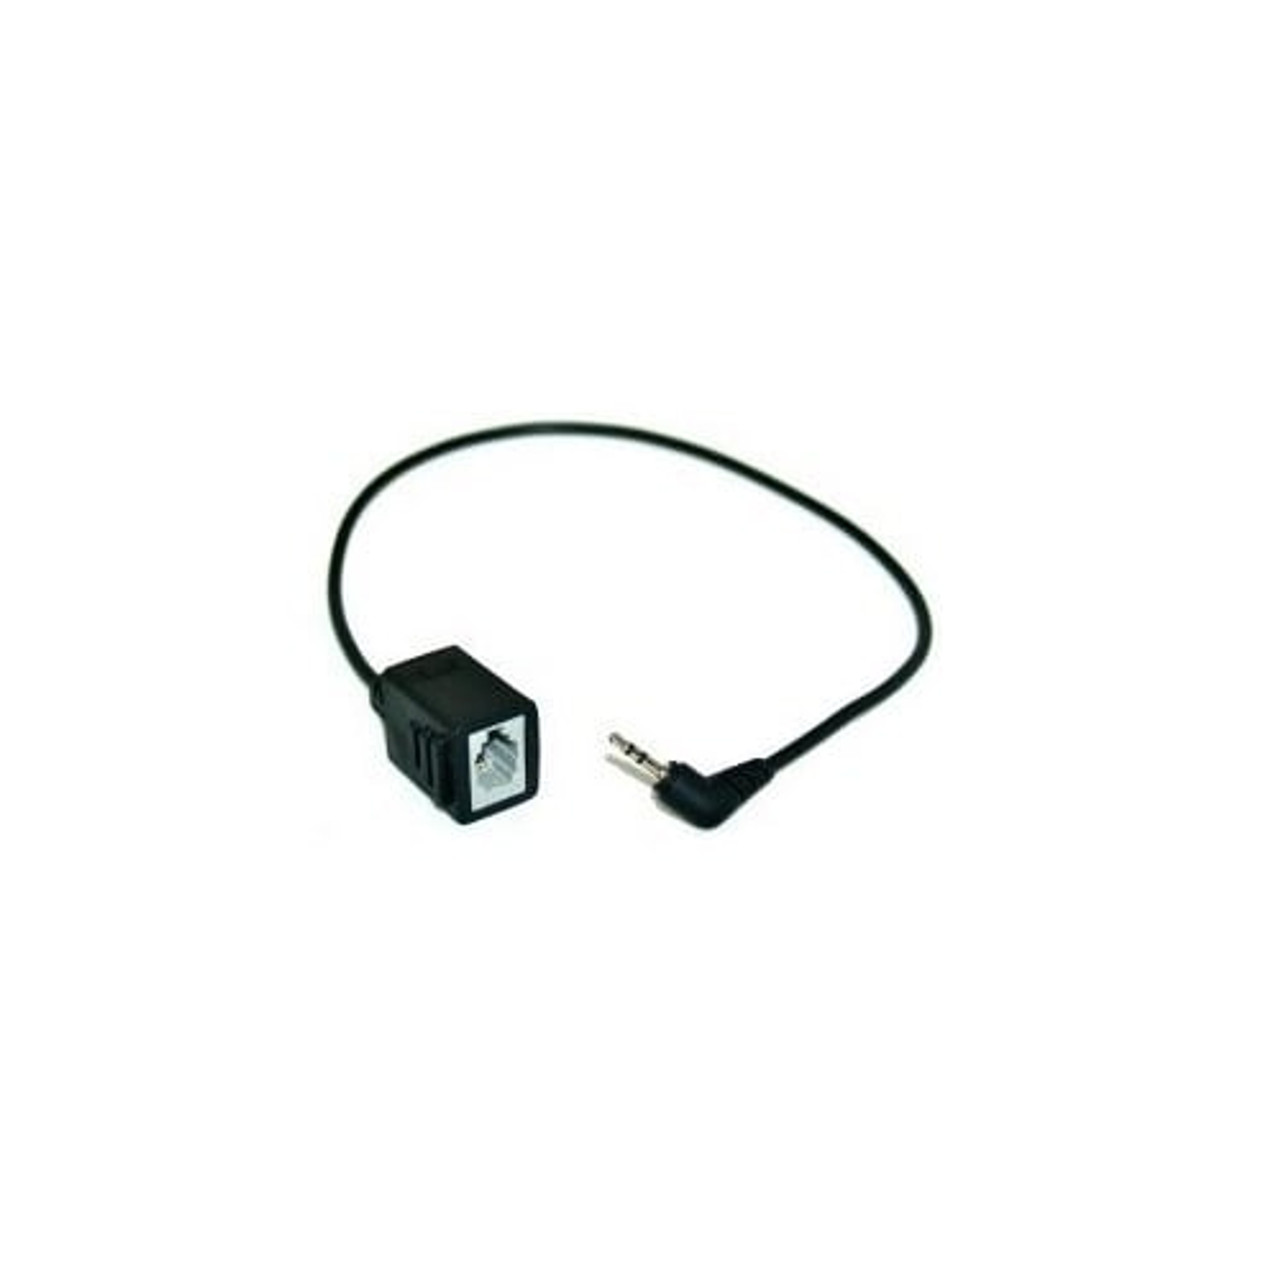 small resolution of rj9 female 2 5mm male adapter plantronics headset to cordless phone connector cable